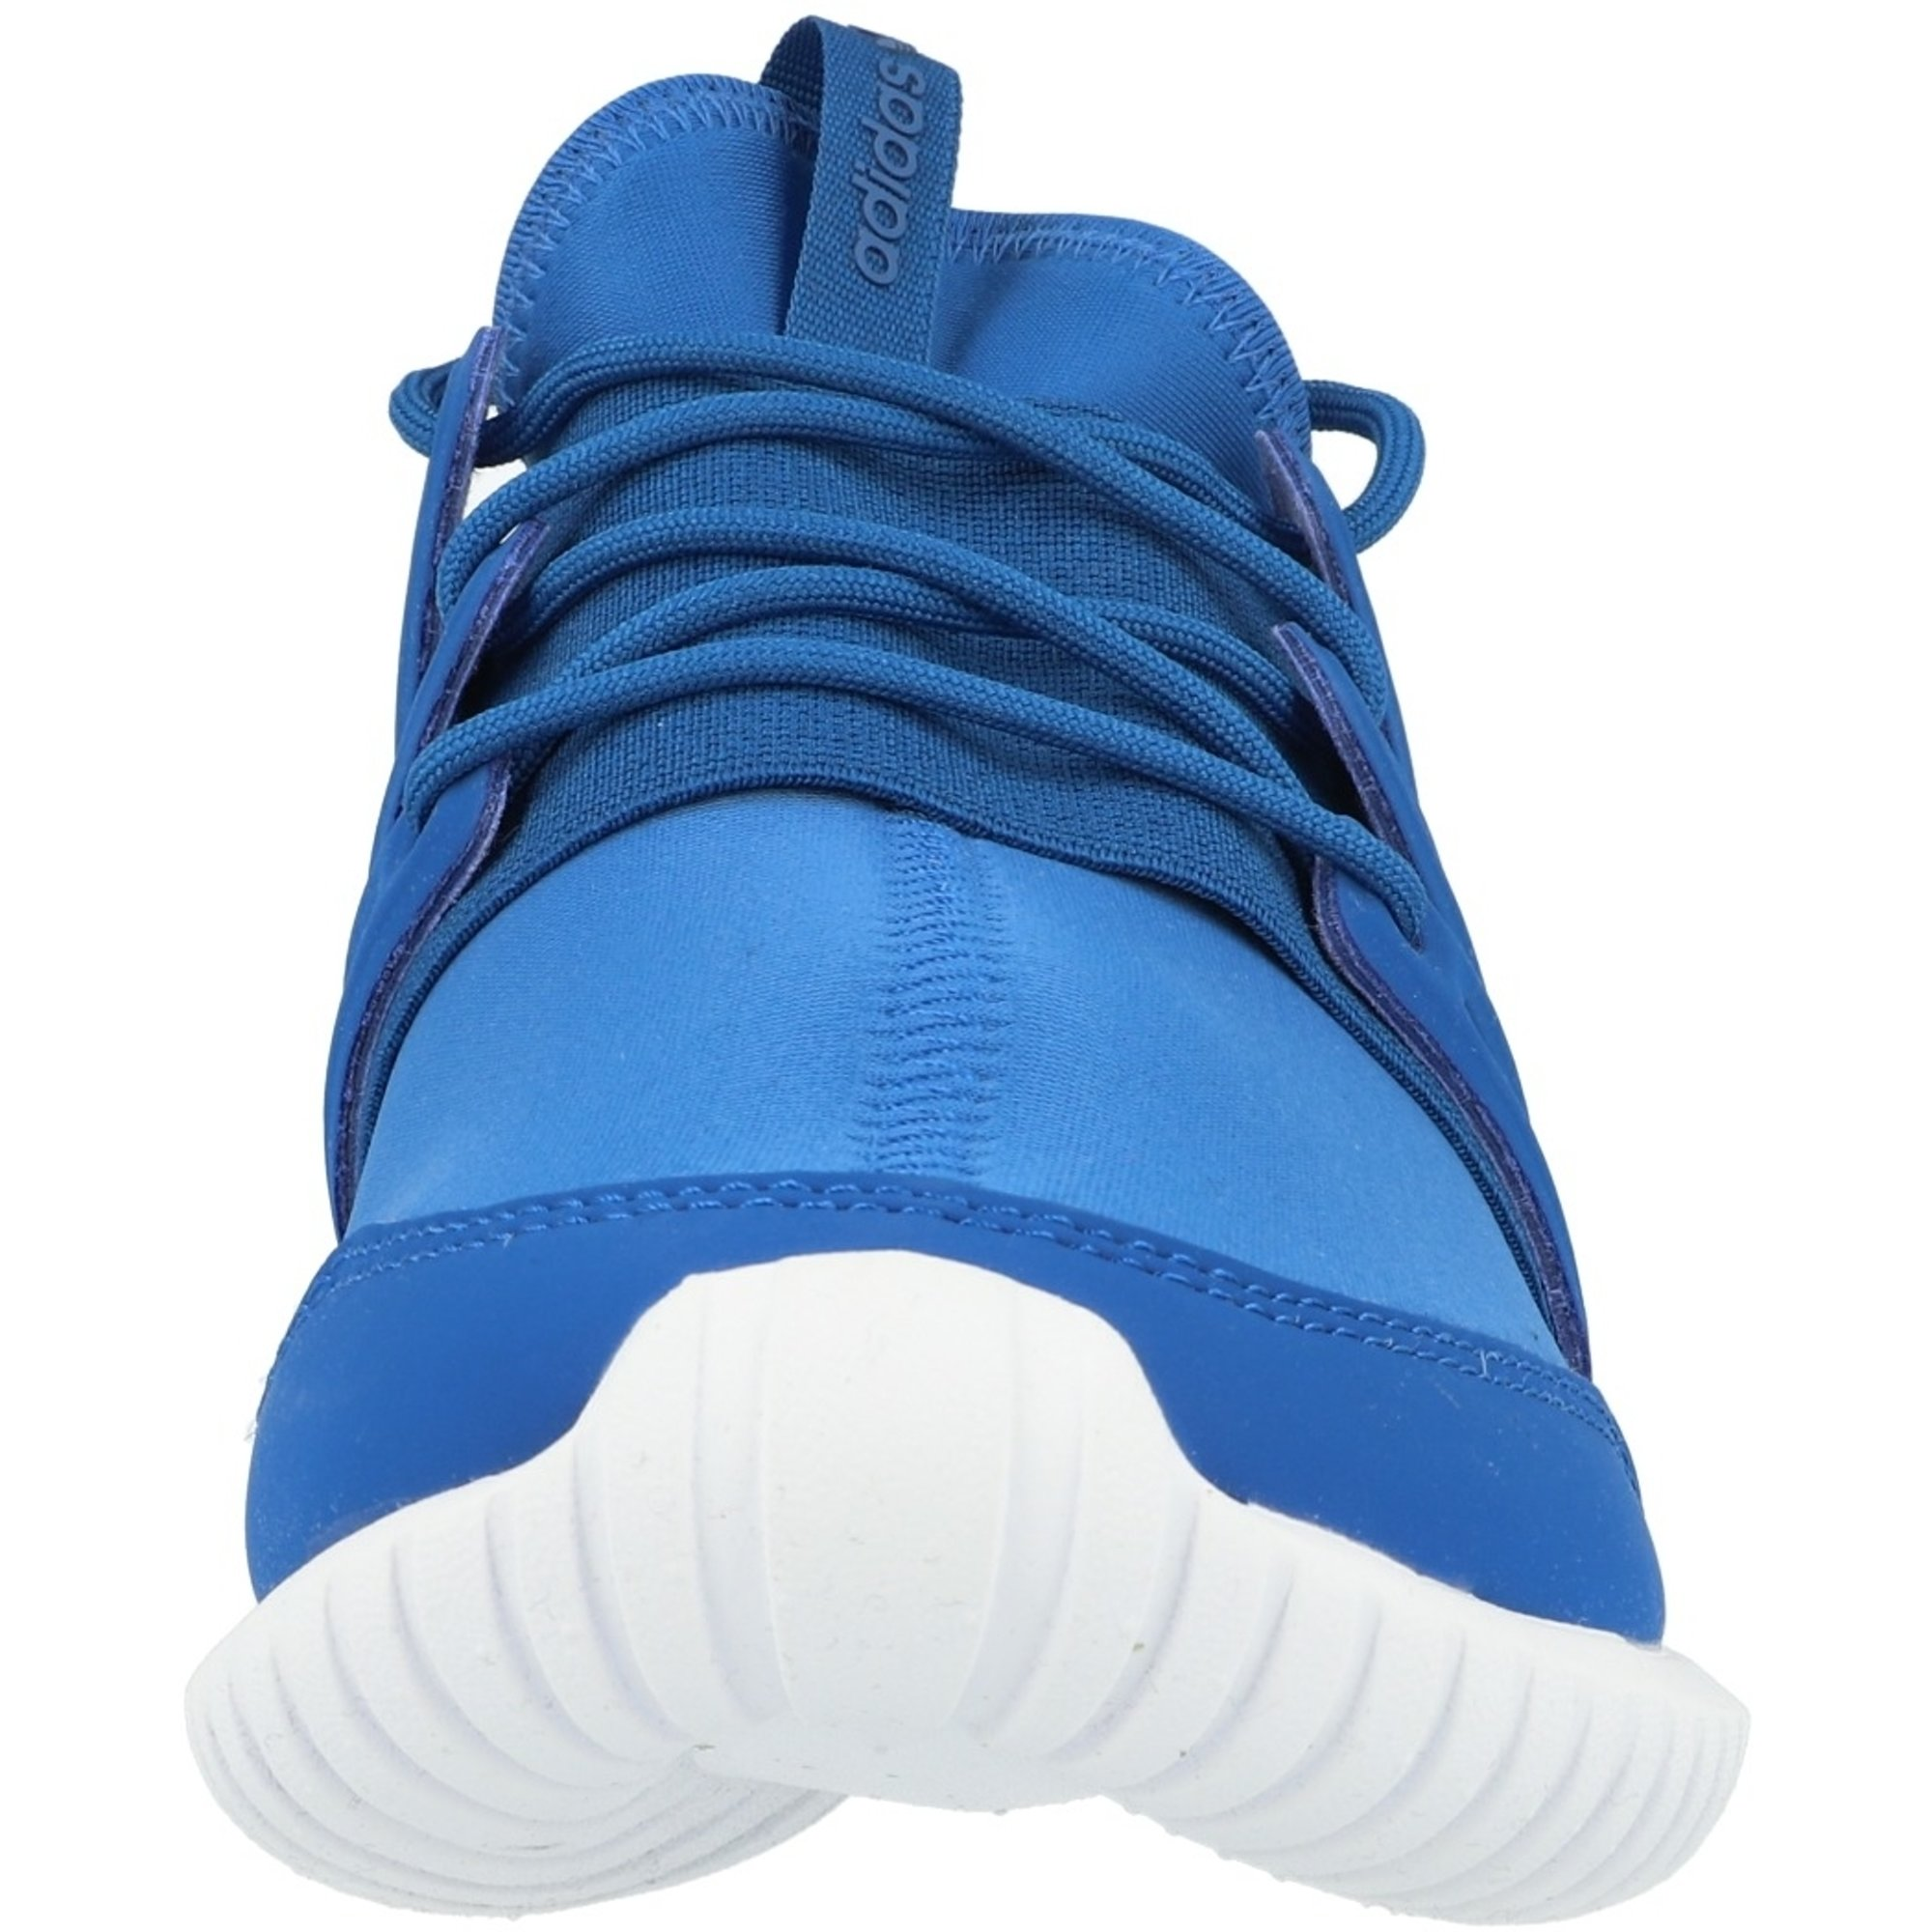 Adidas Kid/'s TUBULAR RADIAL Shoes NEW AUTHENTIC Blue S75010